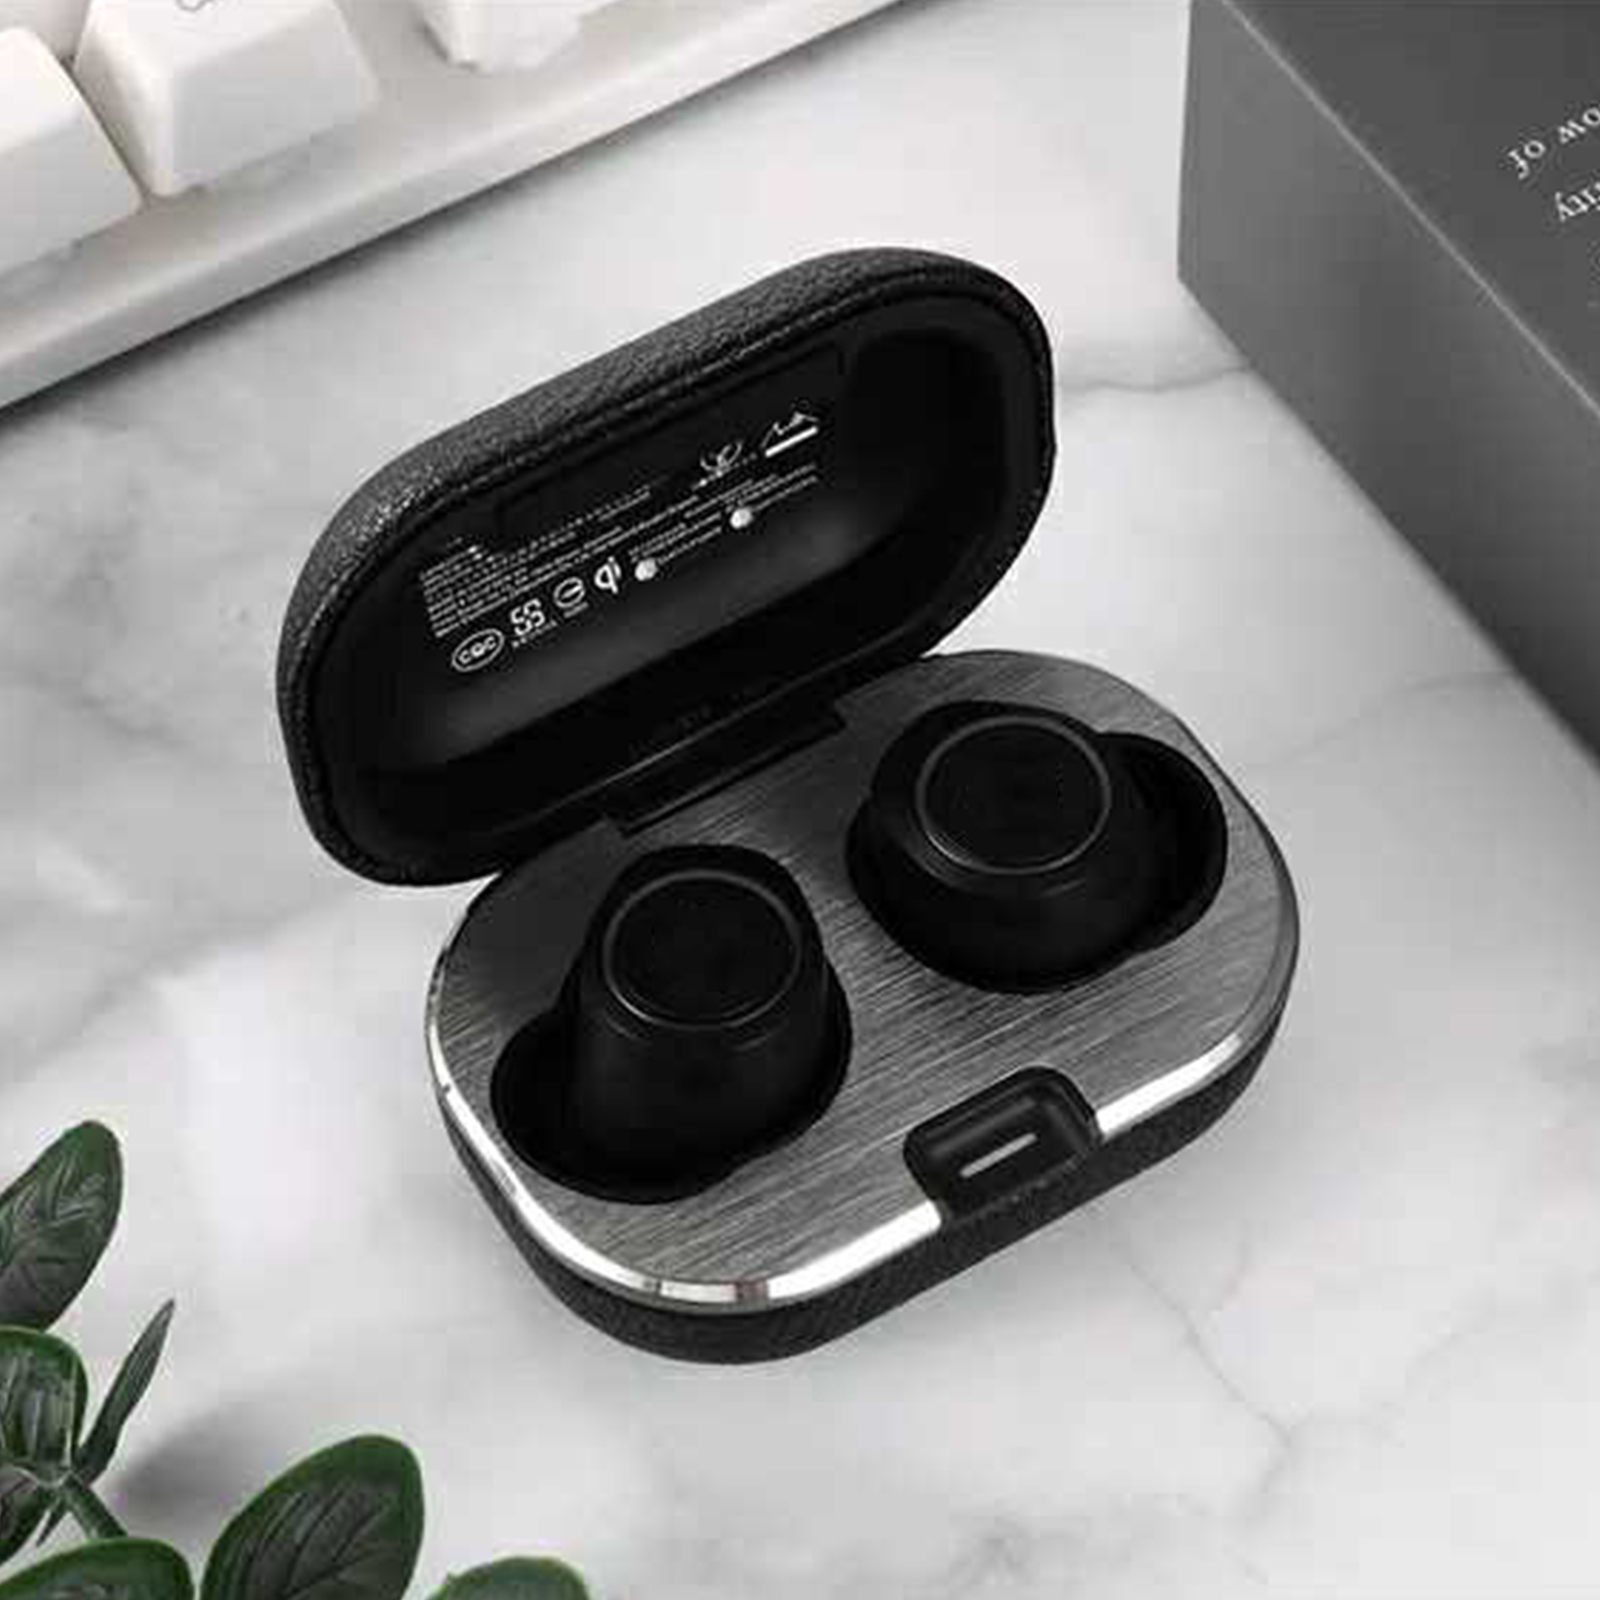 Wireless Earphone Storage Case Portable Charging Box For B&O Play Beoplay E8 2.0 Bluetooth Headphone Accessories